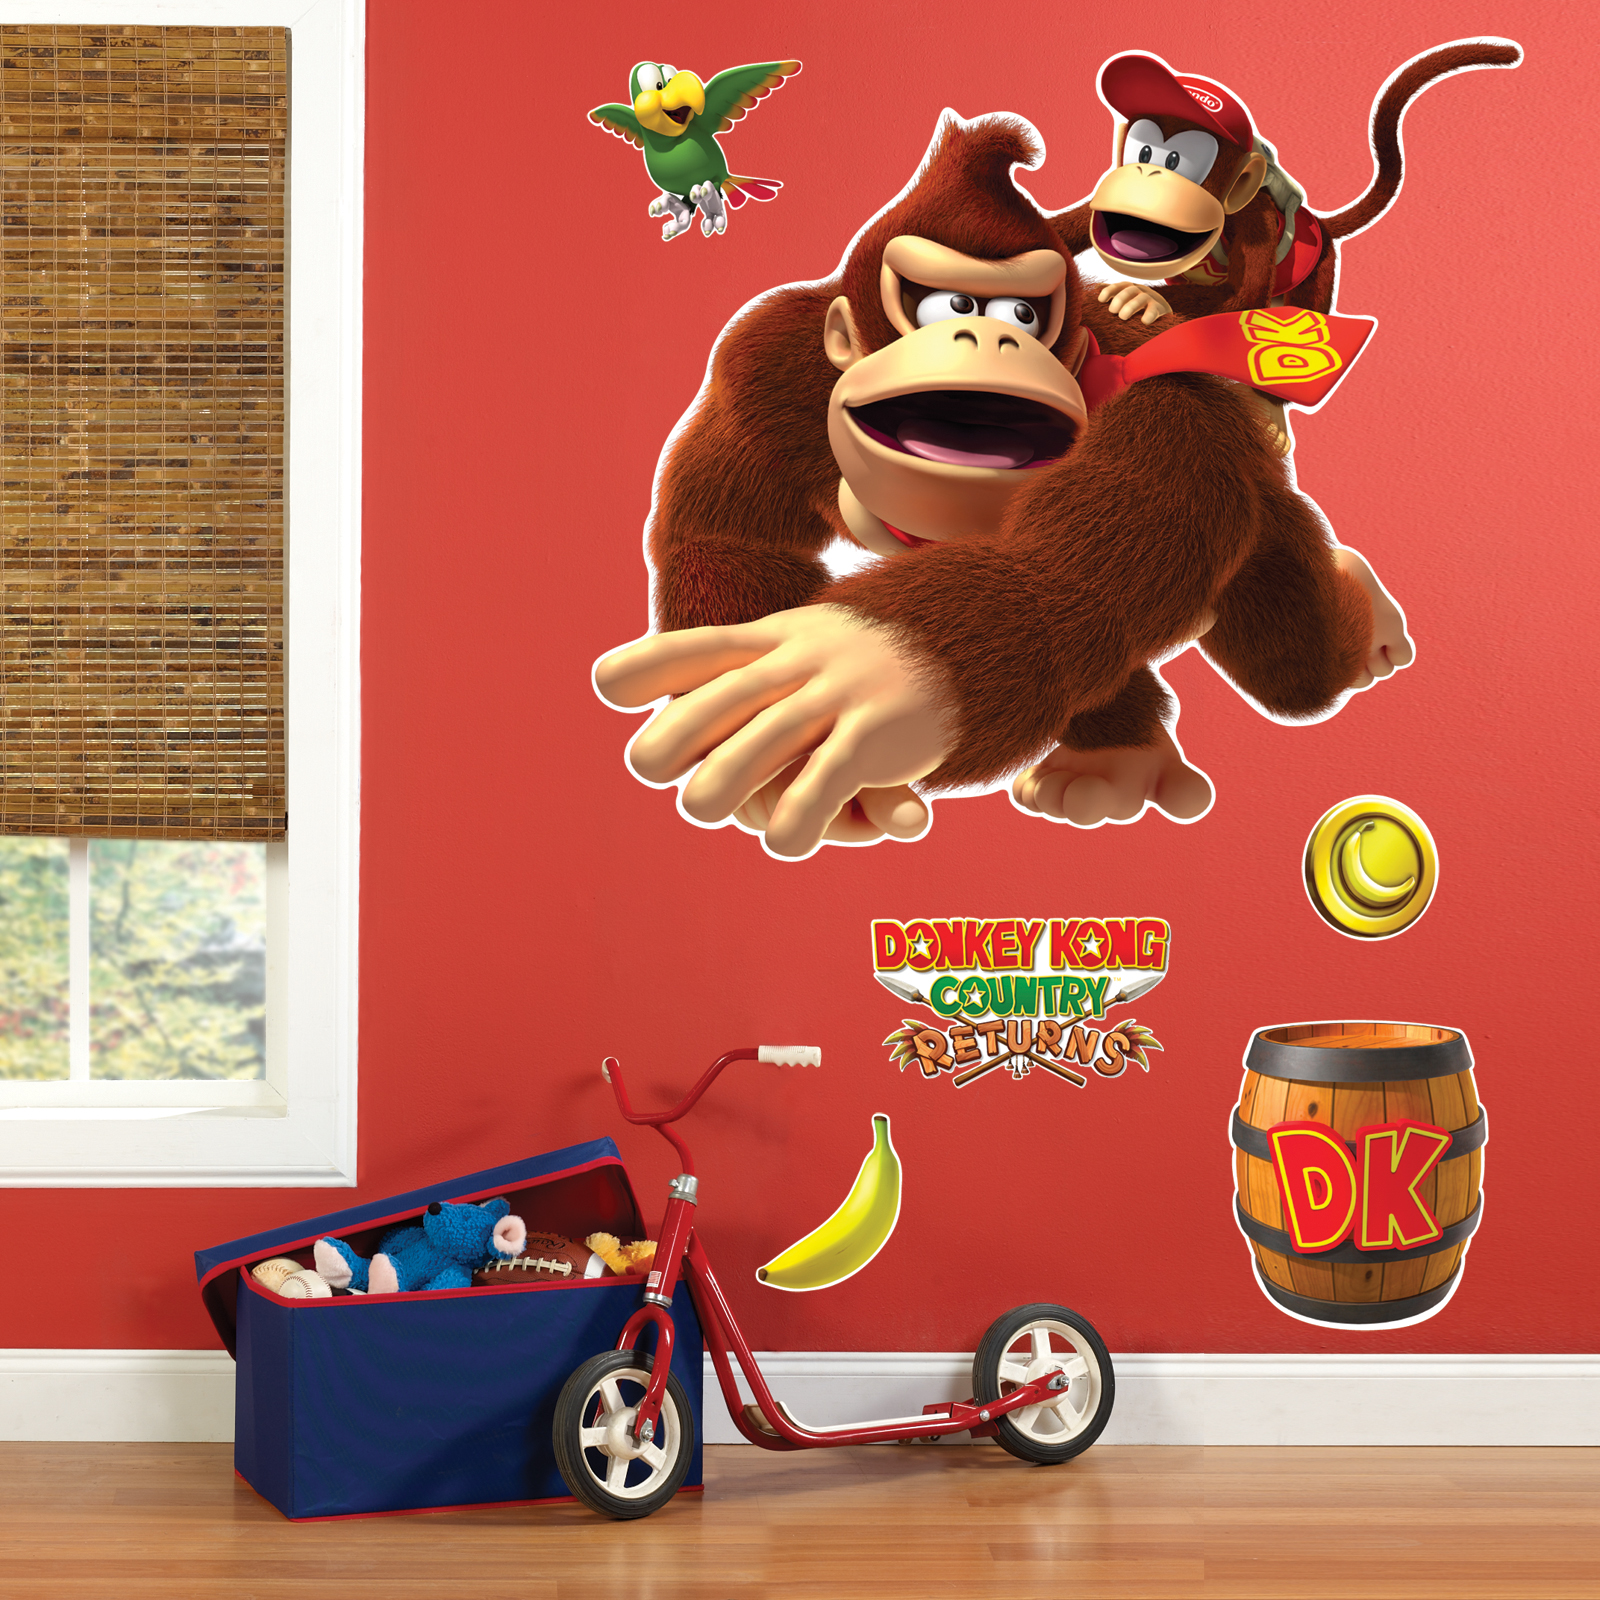 Donkey Kong Giant Wall Decals eBay